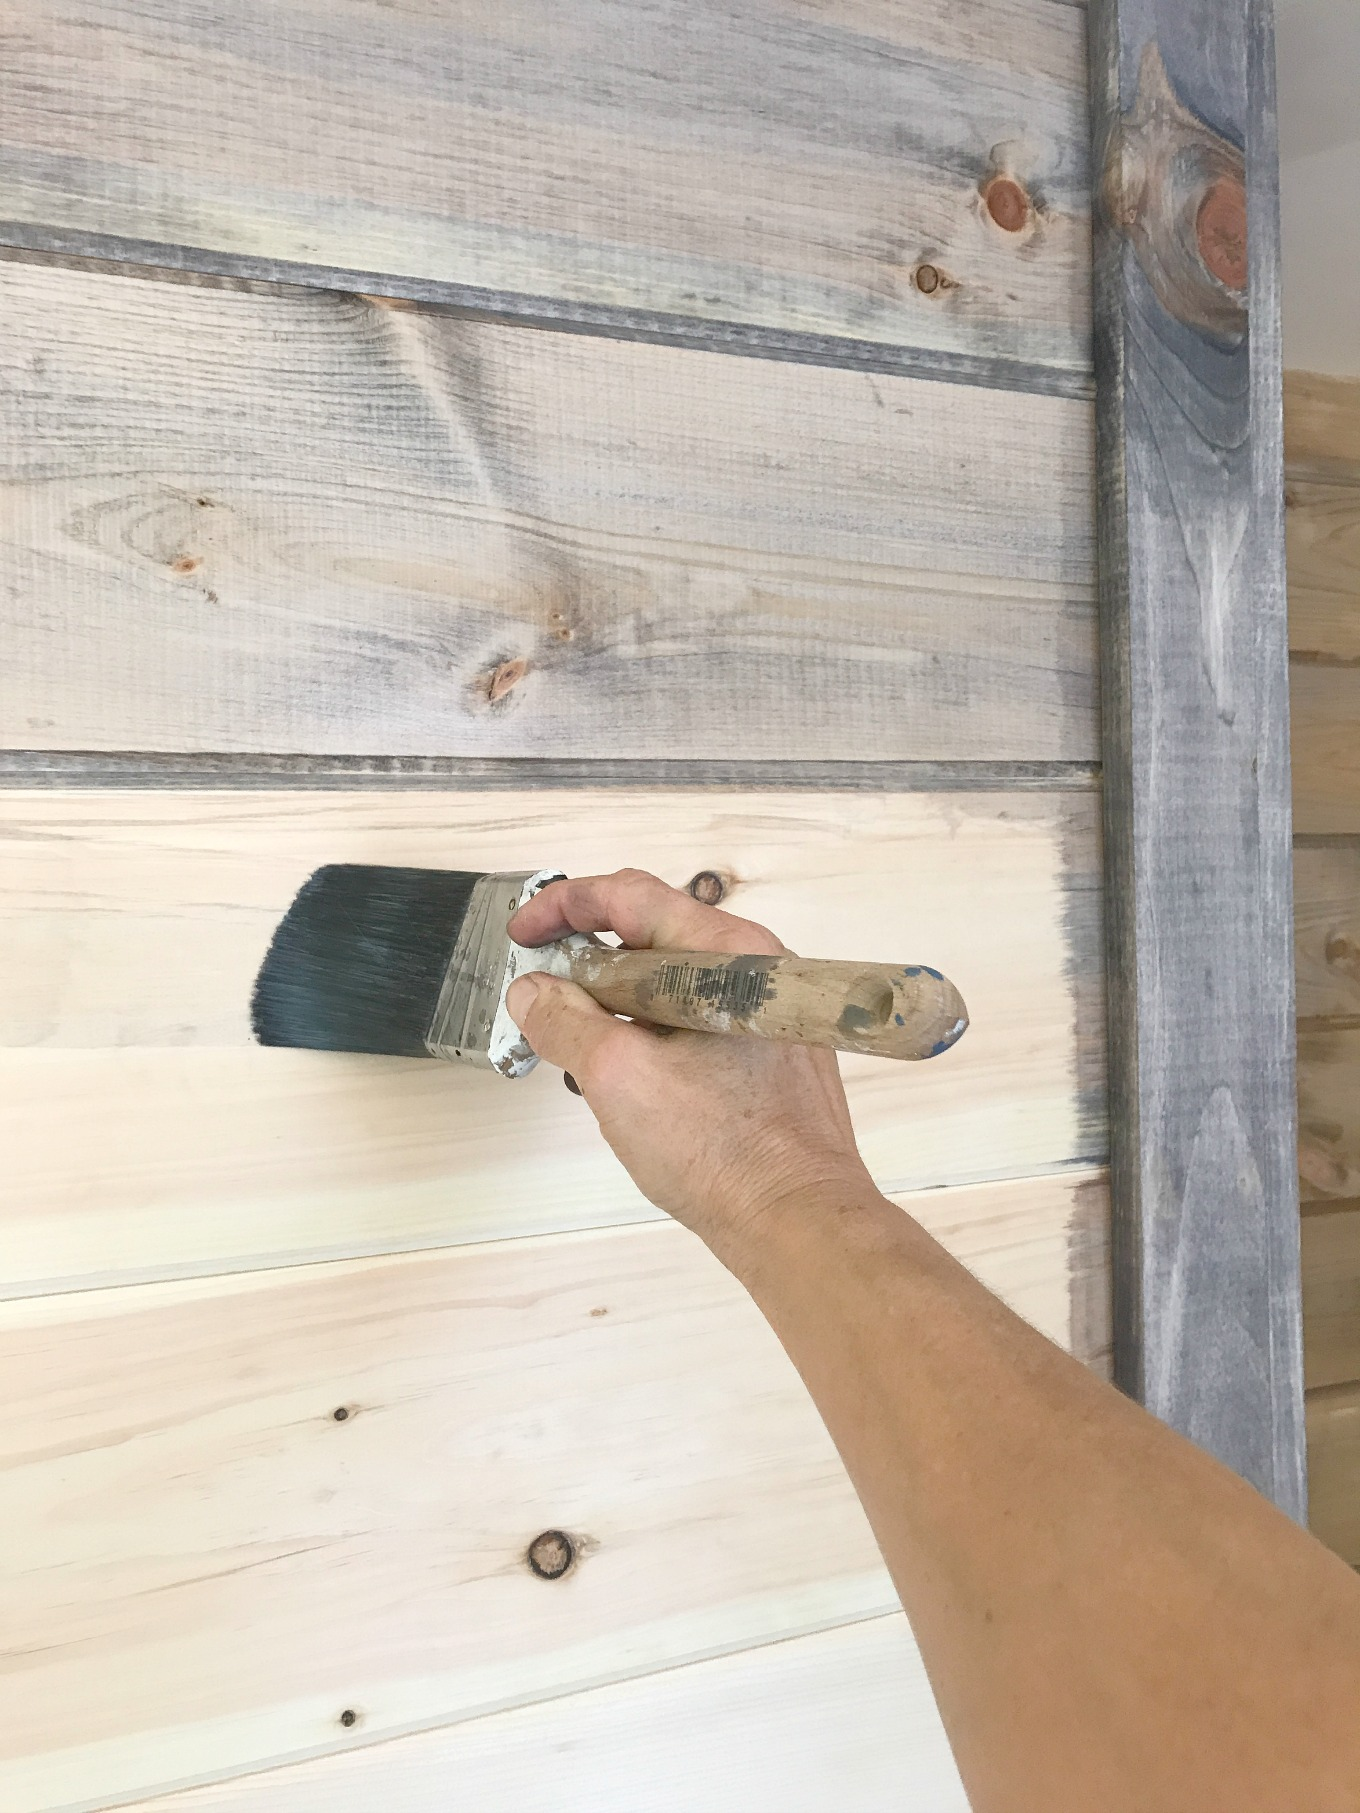 Diy Shiplap Vs Planked Wood Walls H2obungalow,How To Clean A Kitchen Sponge